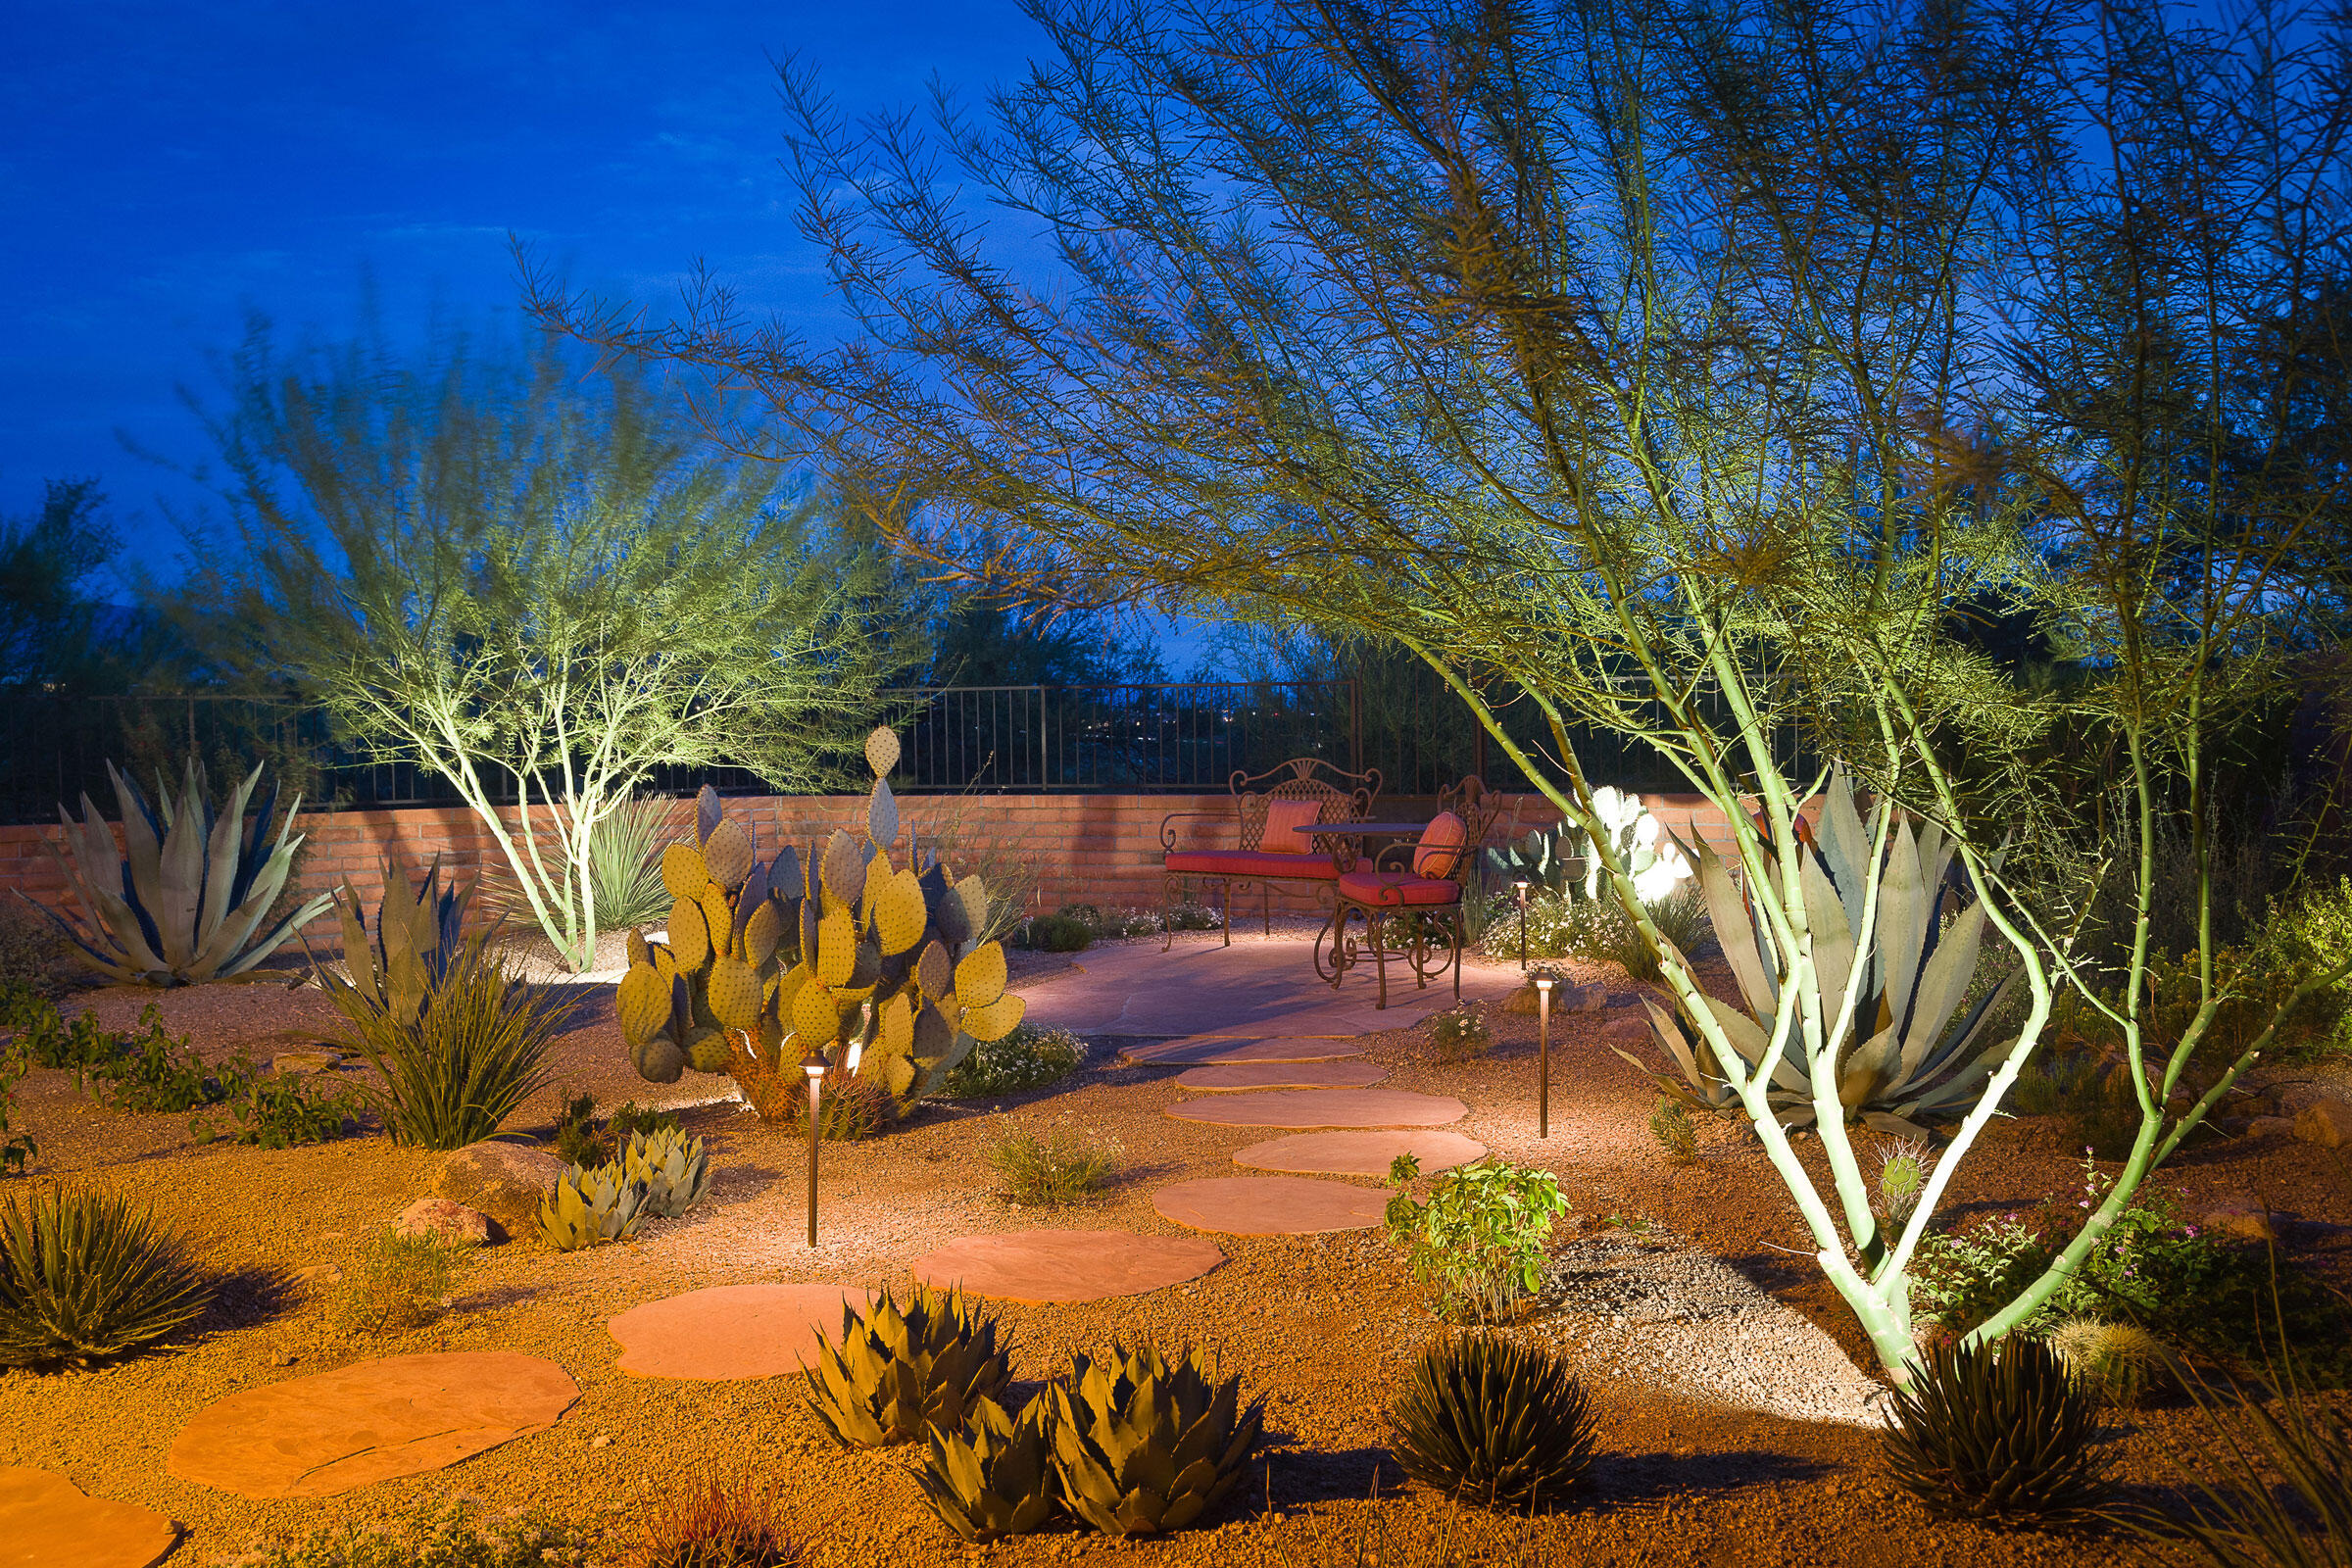 Sally Heinlein's garden in Tucson, Arizona, boasts agaves, red yucca, and prickly pear cactus. Here it is illuminated at dusk. Mark Turner